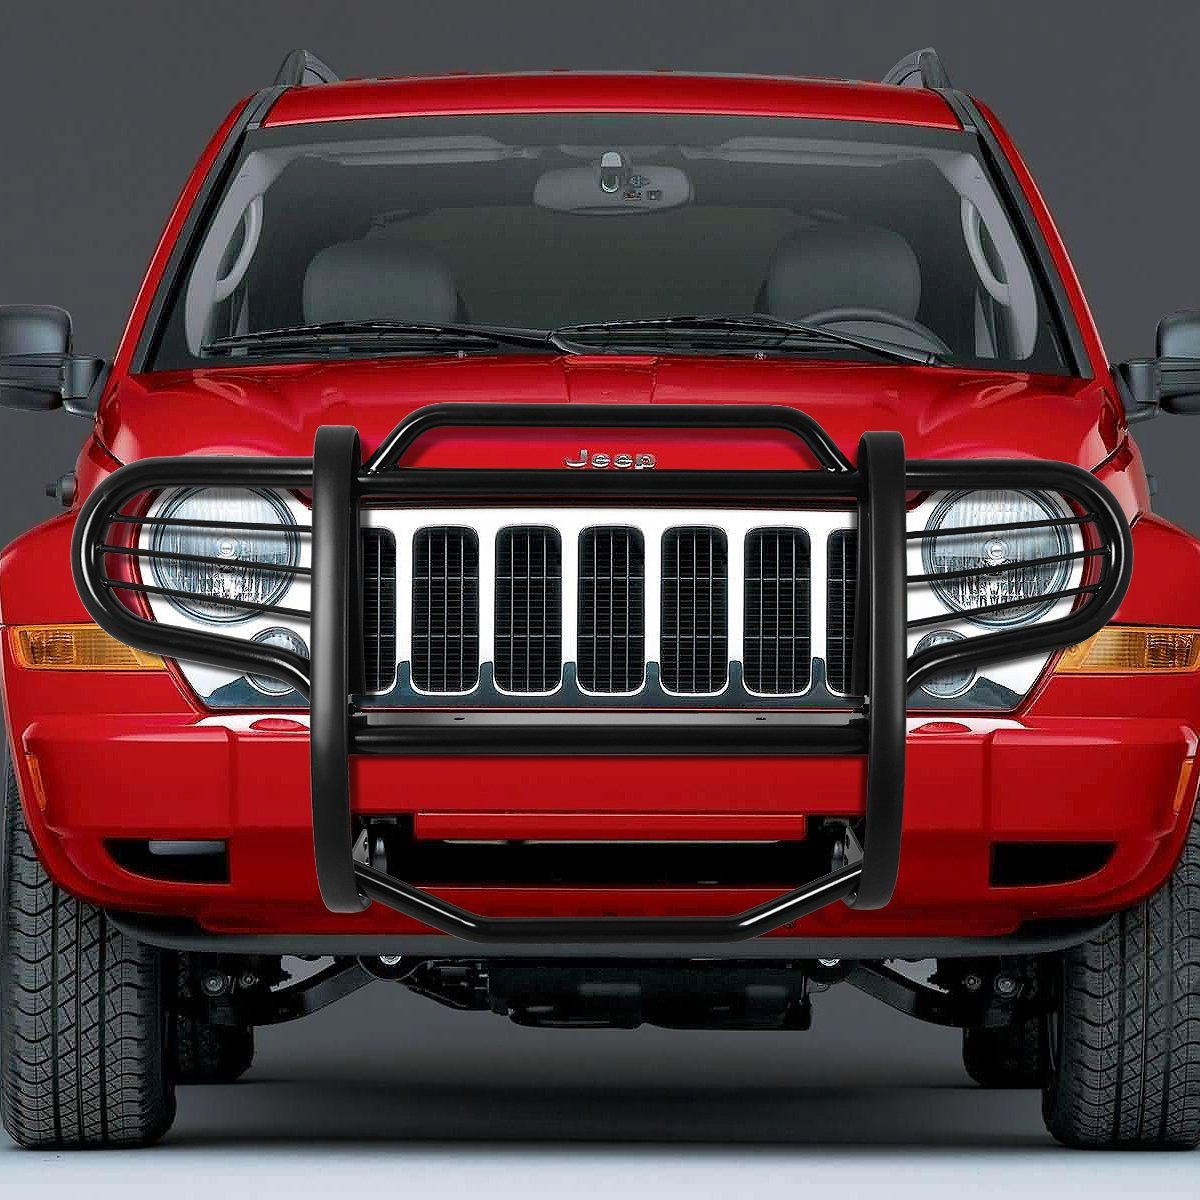 02-07 Jeep Liberty KJ Front Bumper Protector Brush Grille